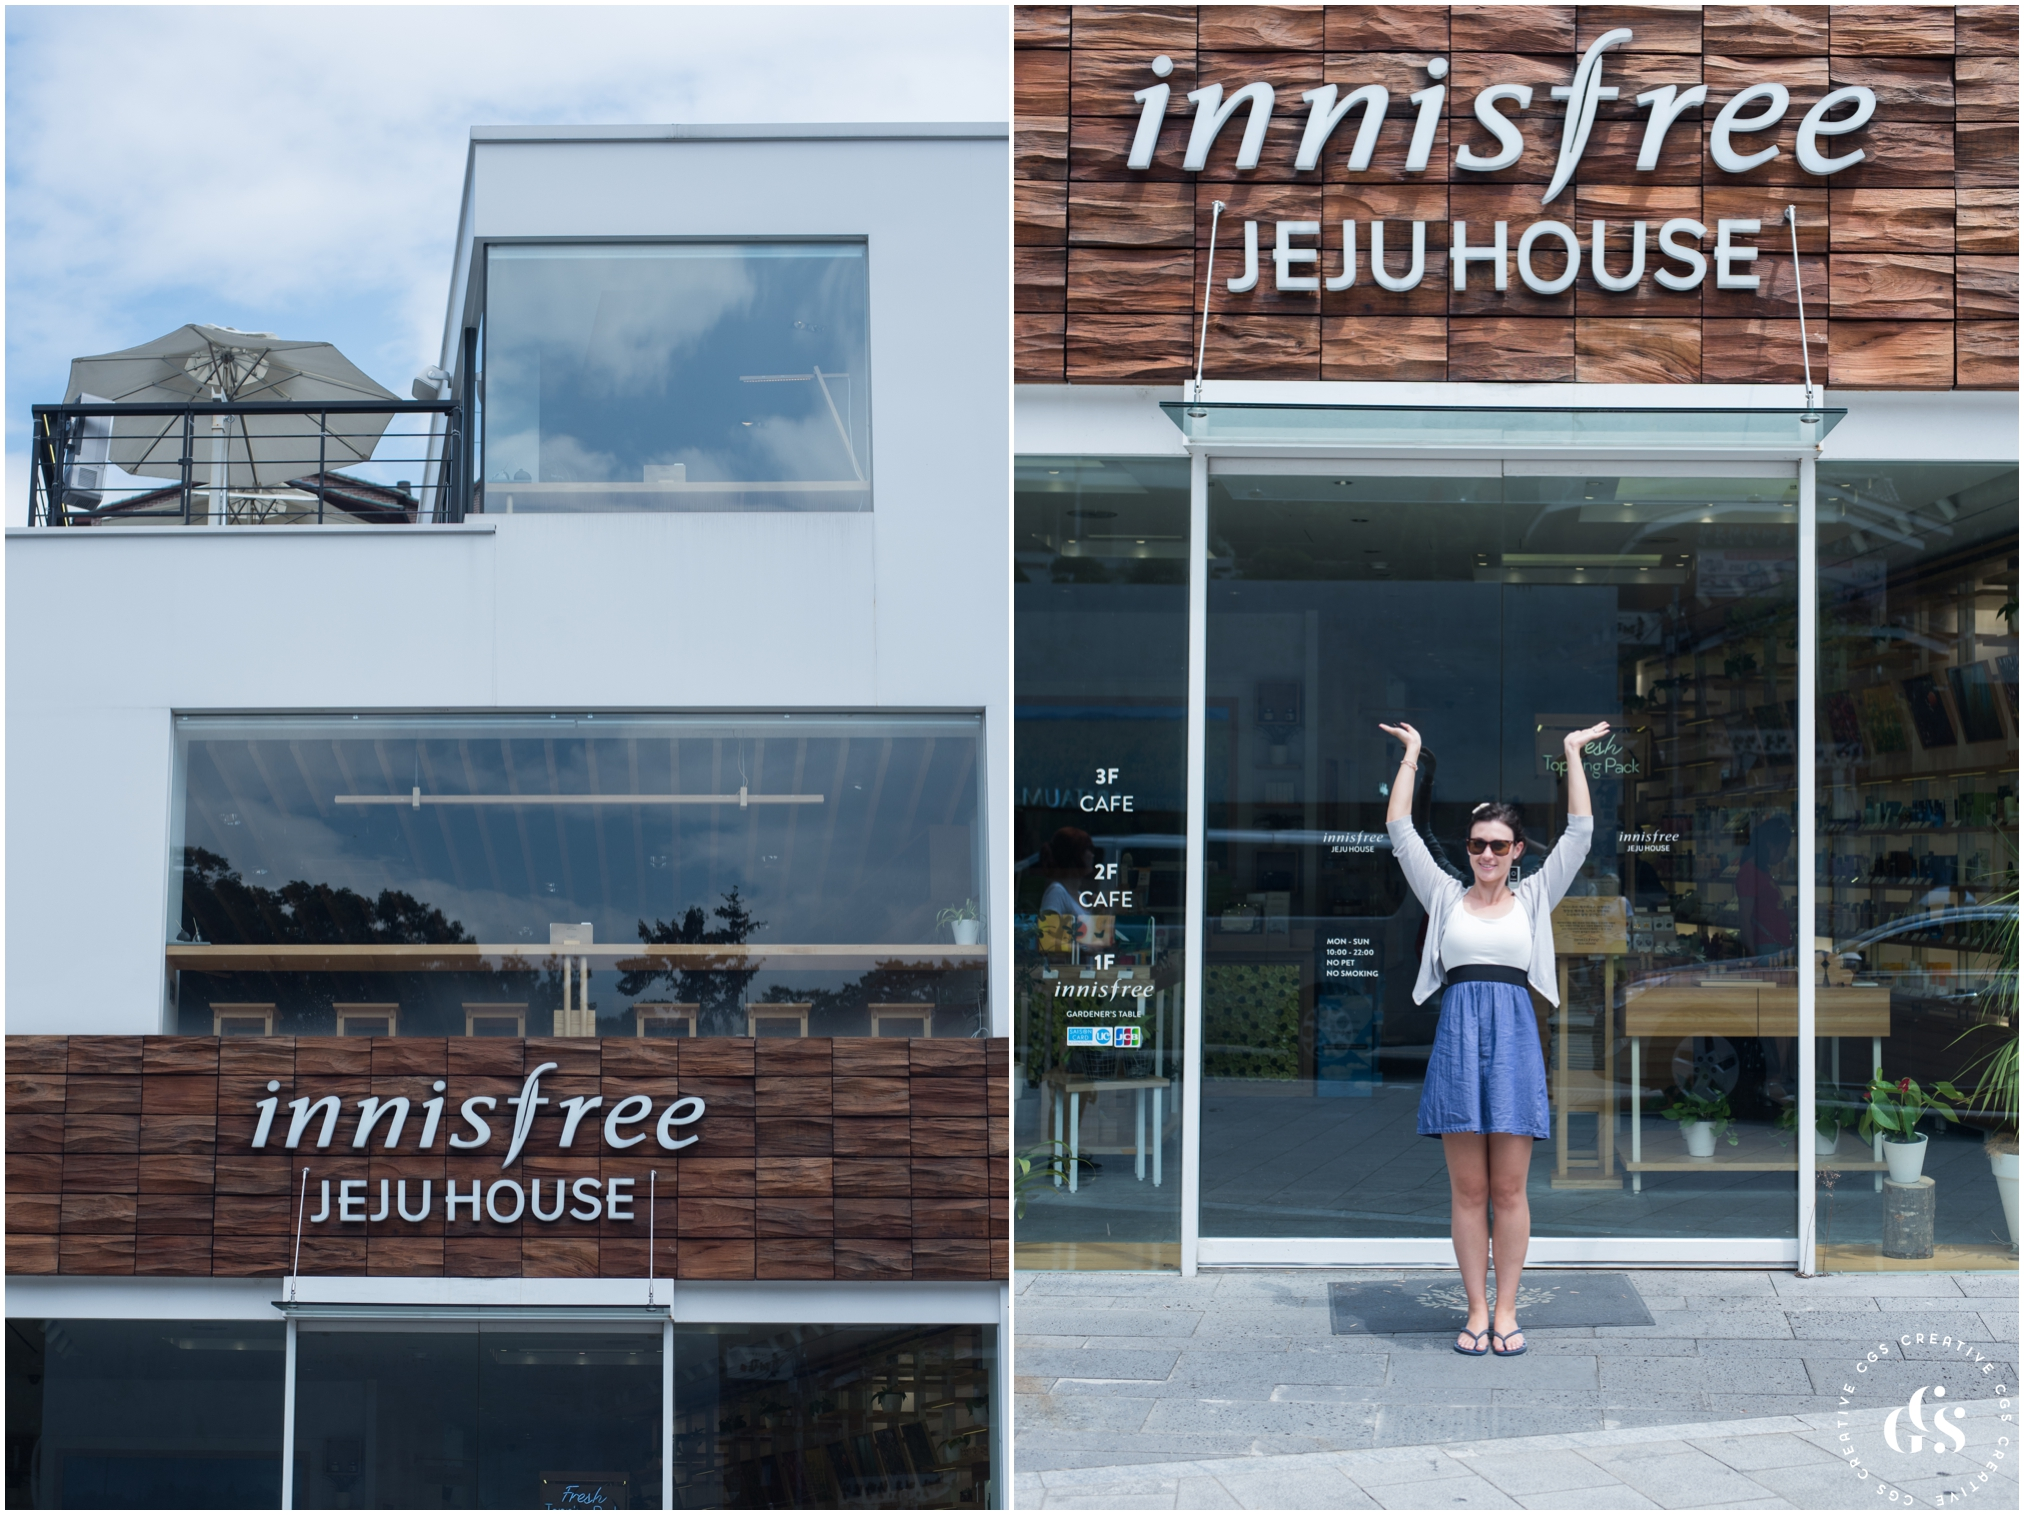 Innisfree Cafe Seoul South Korea CityGirlSearching by Roxy Hutton  (8 of 45).JPG